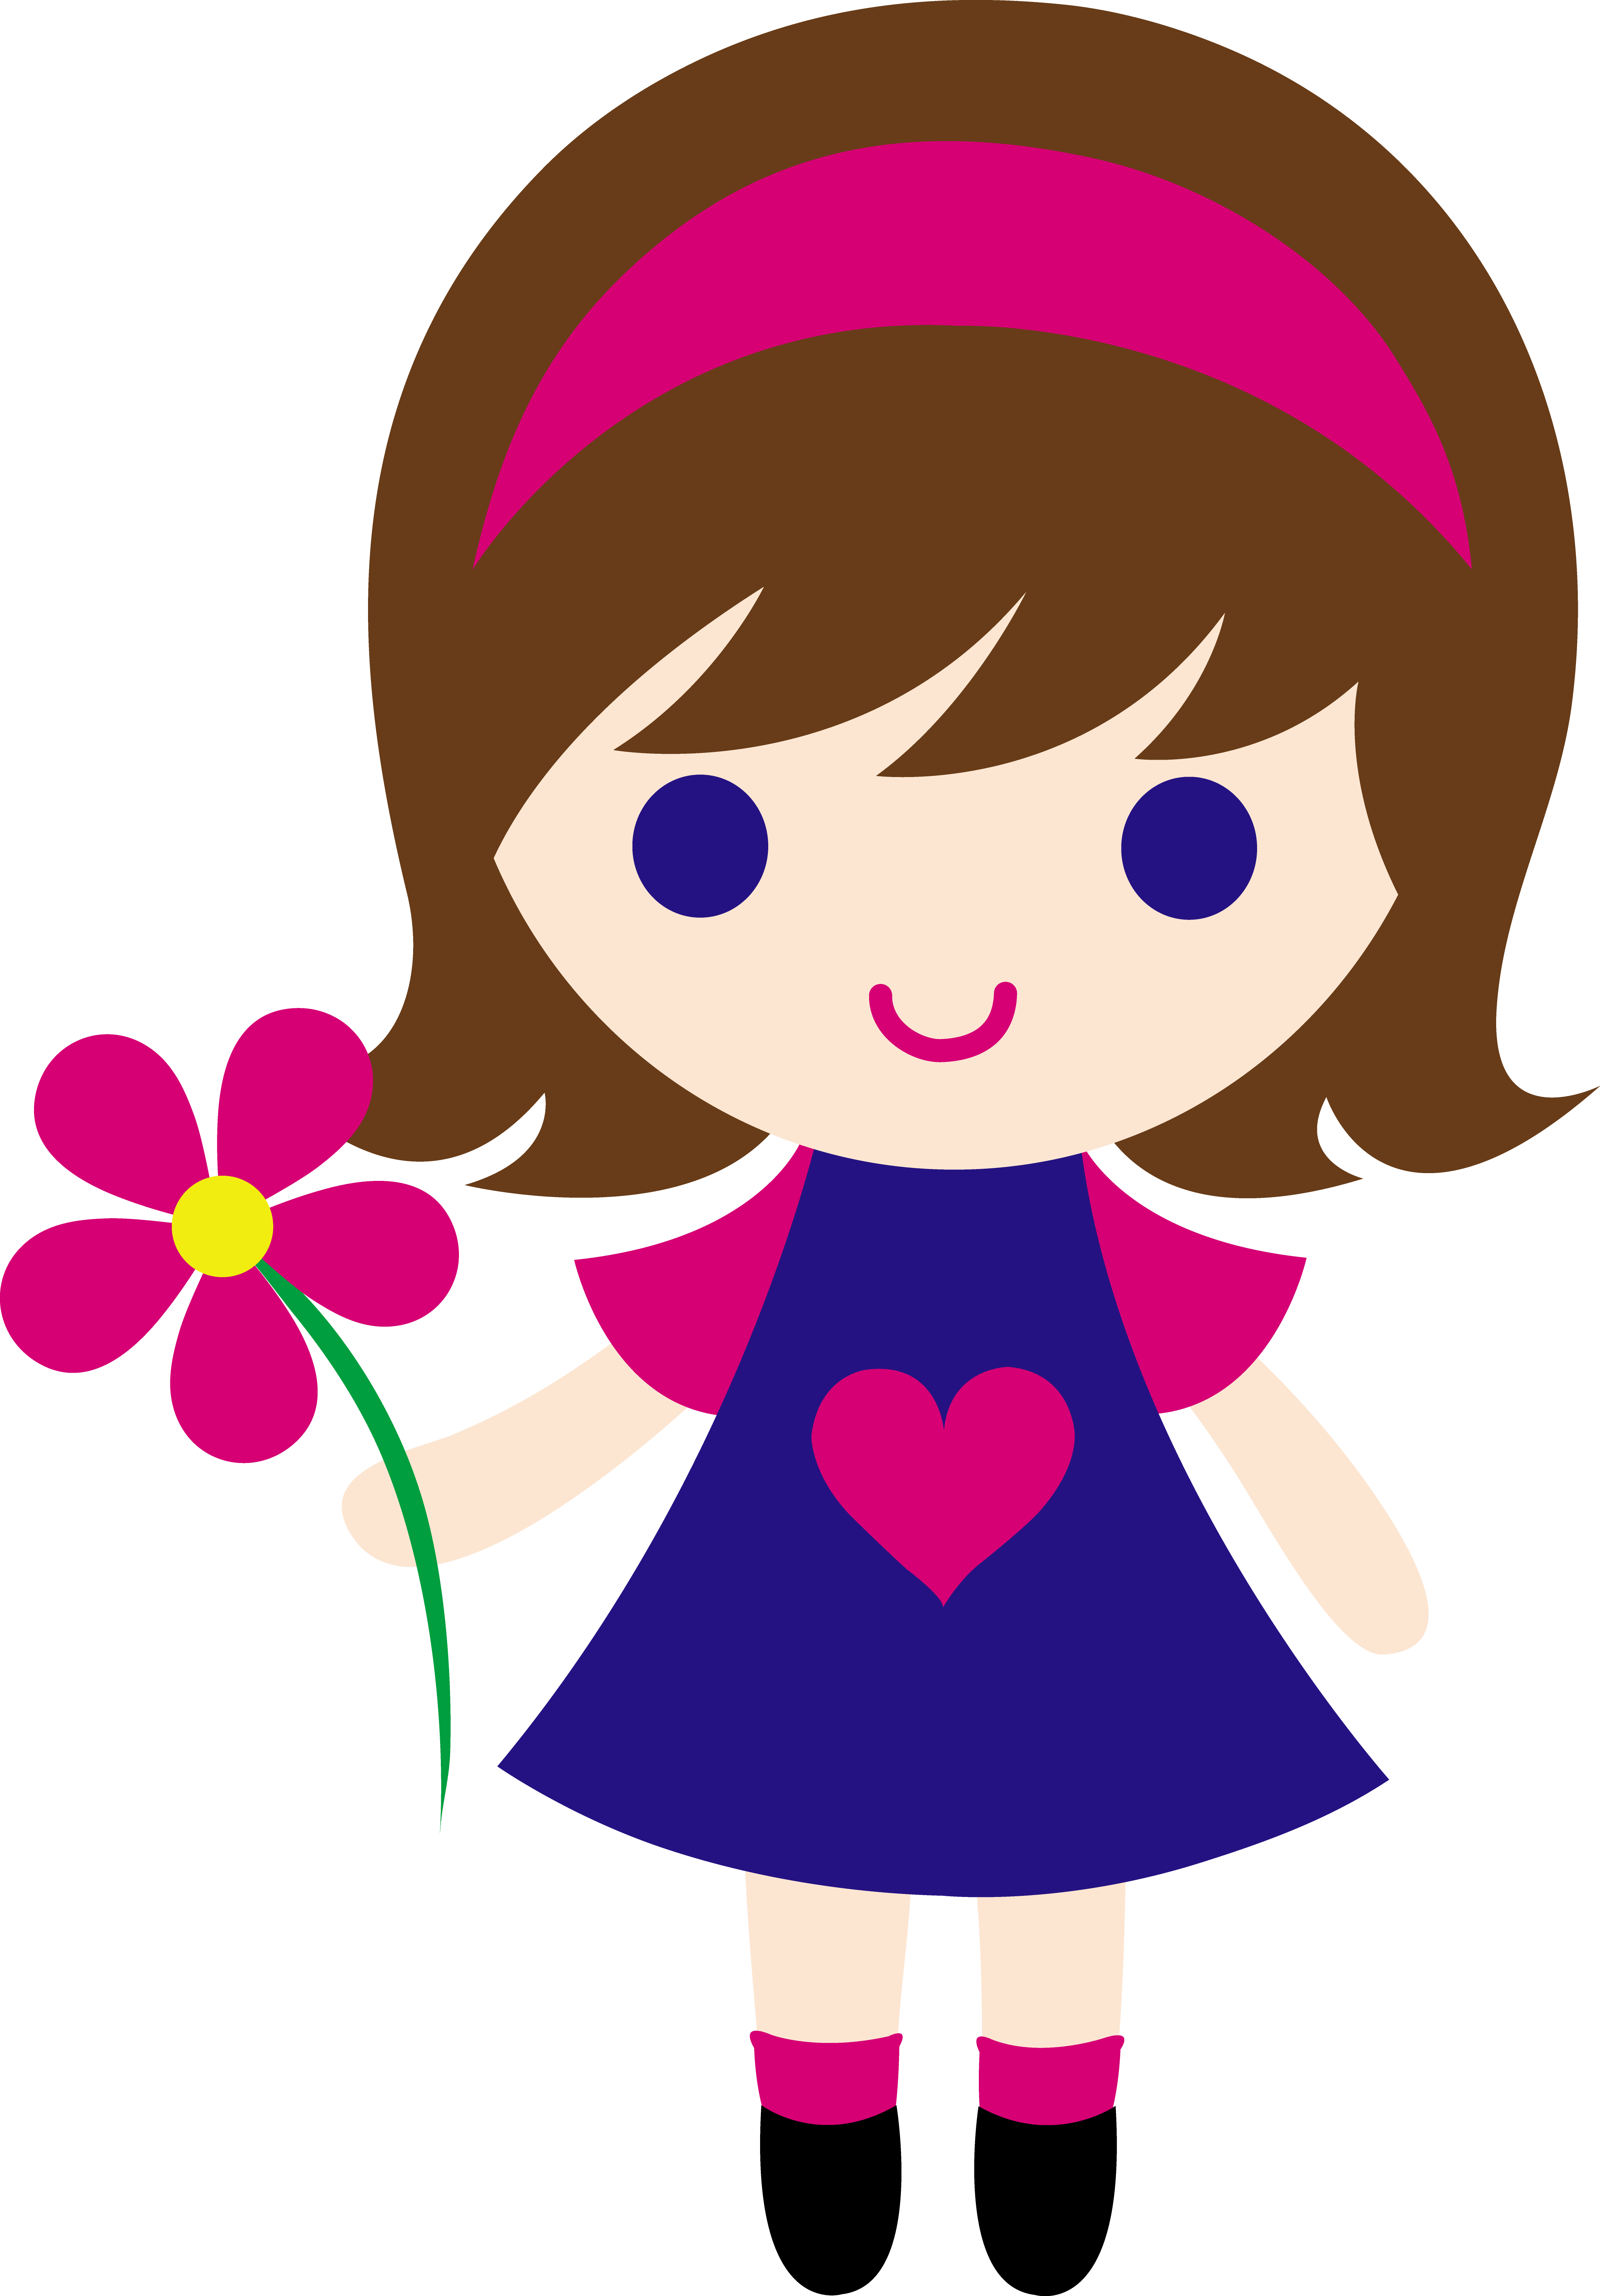 Cute Little Girl Holding Daisy Free clipart free image.